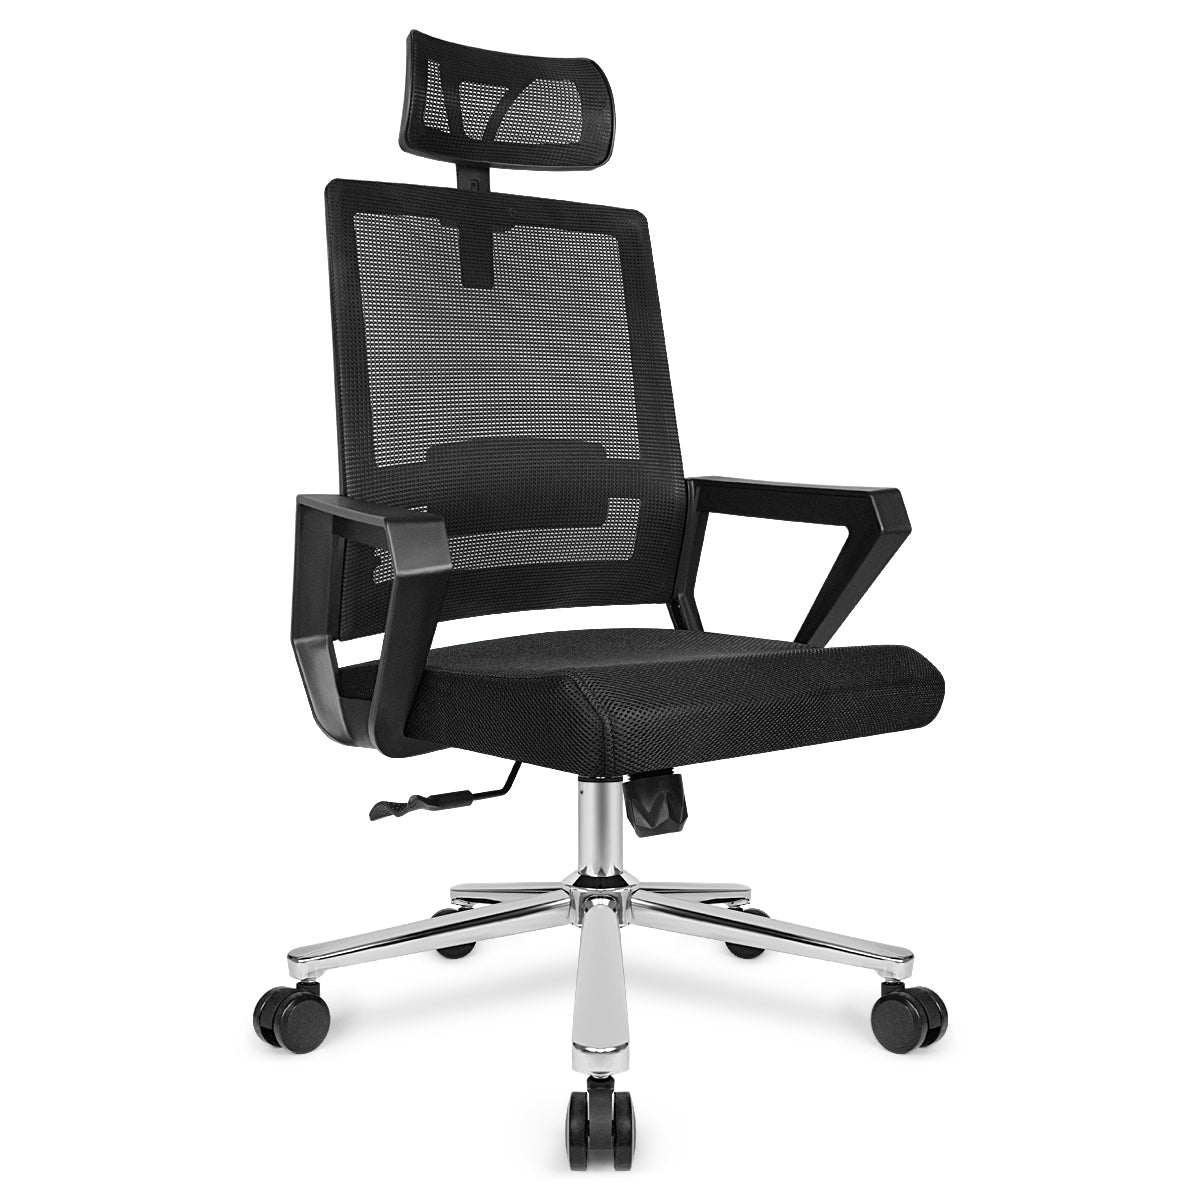 Ergonomic Office Chair High Back Mesh Office Chair with Arms For Home office